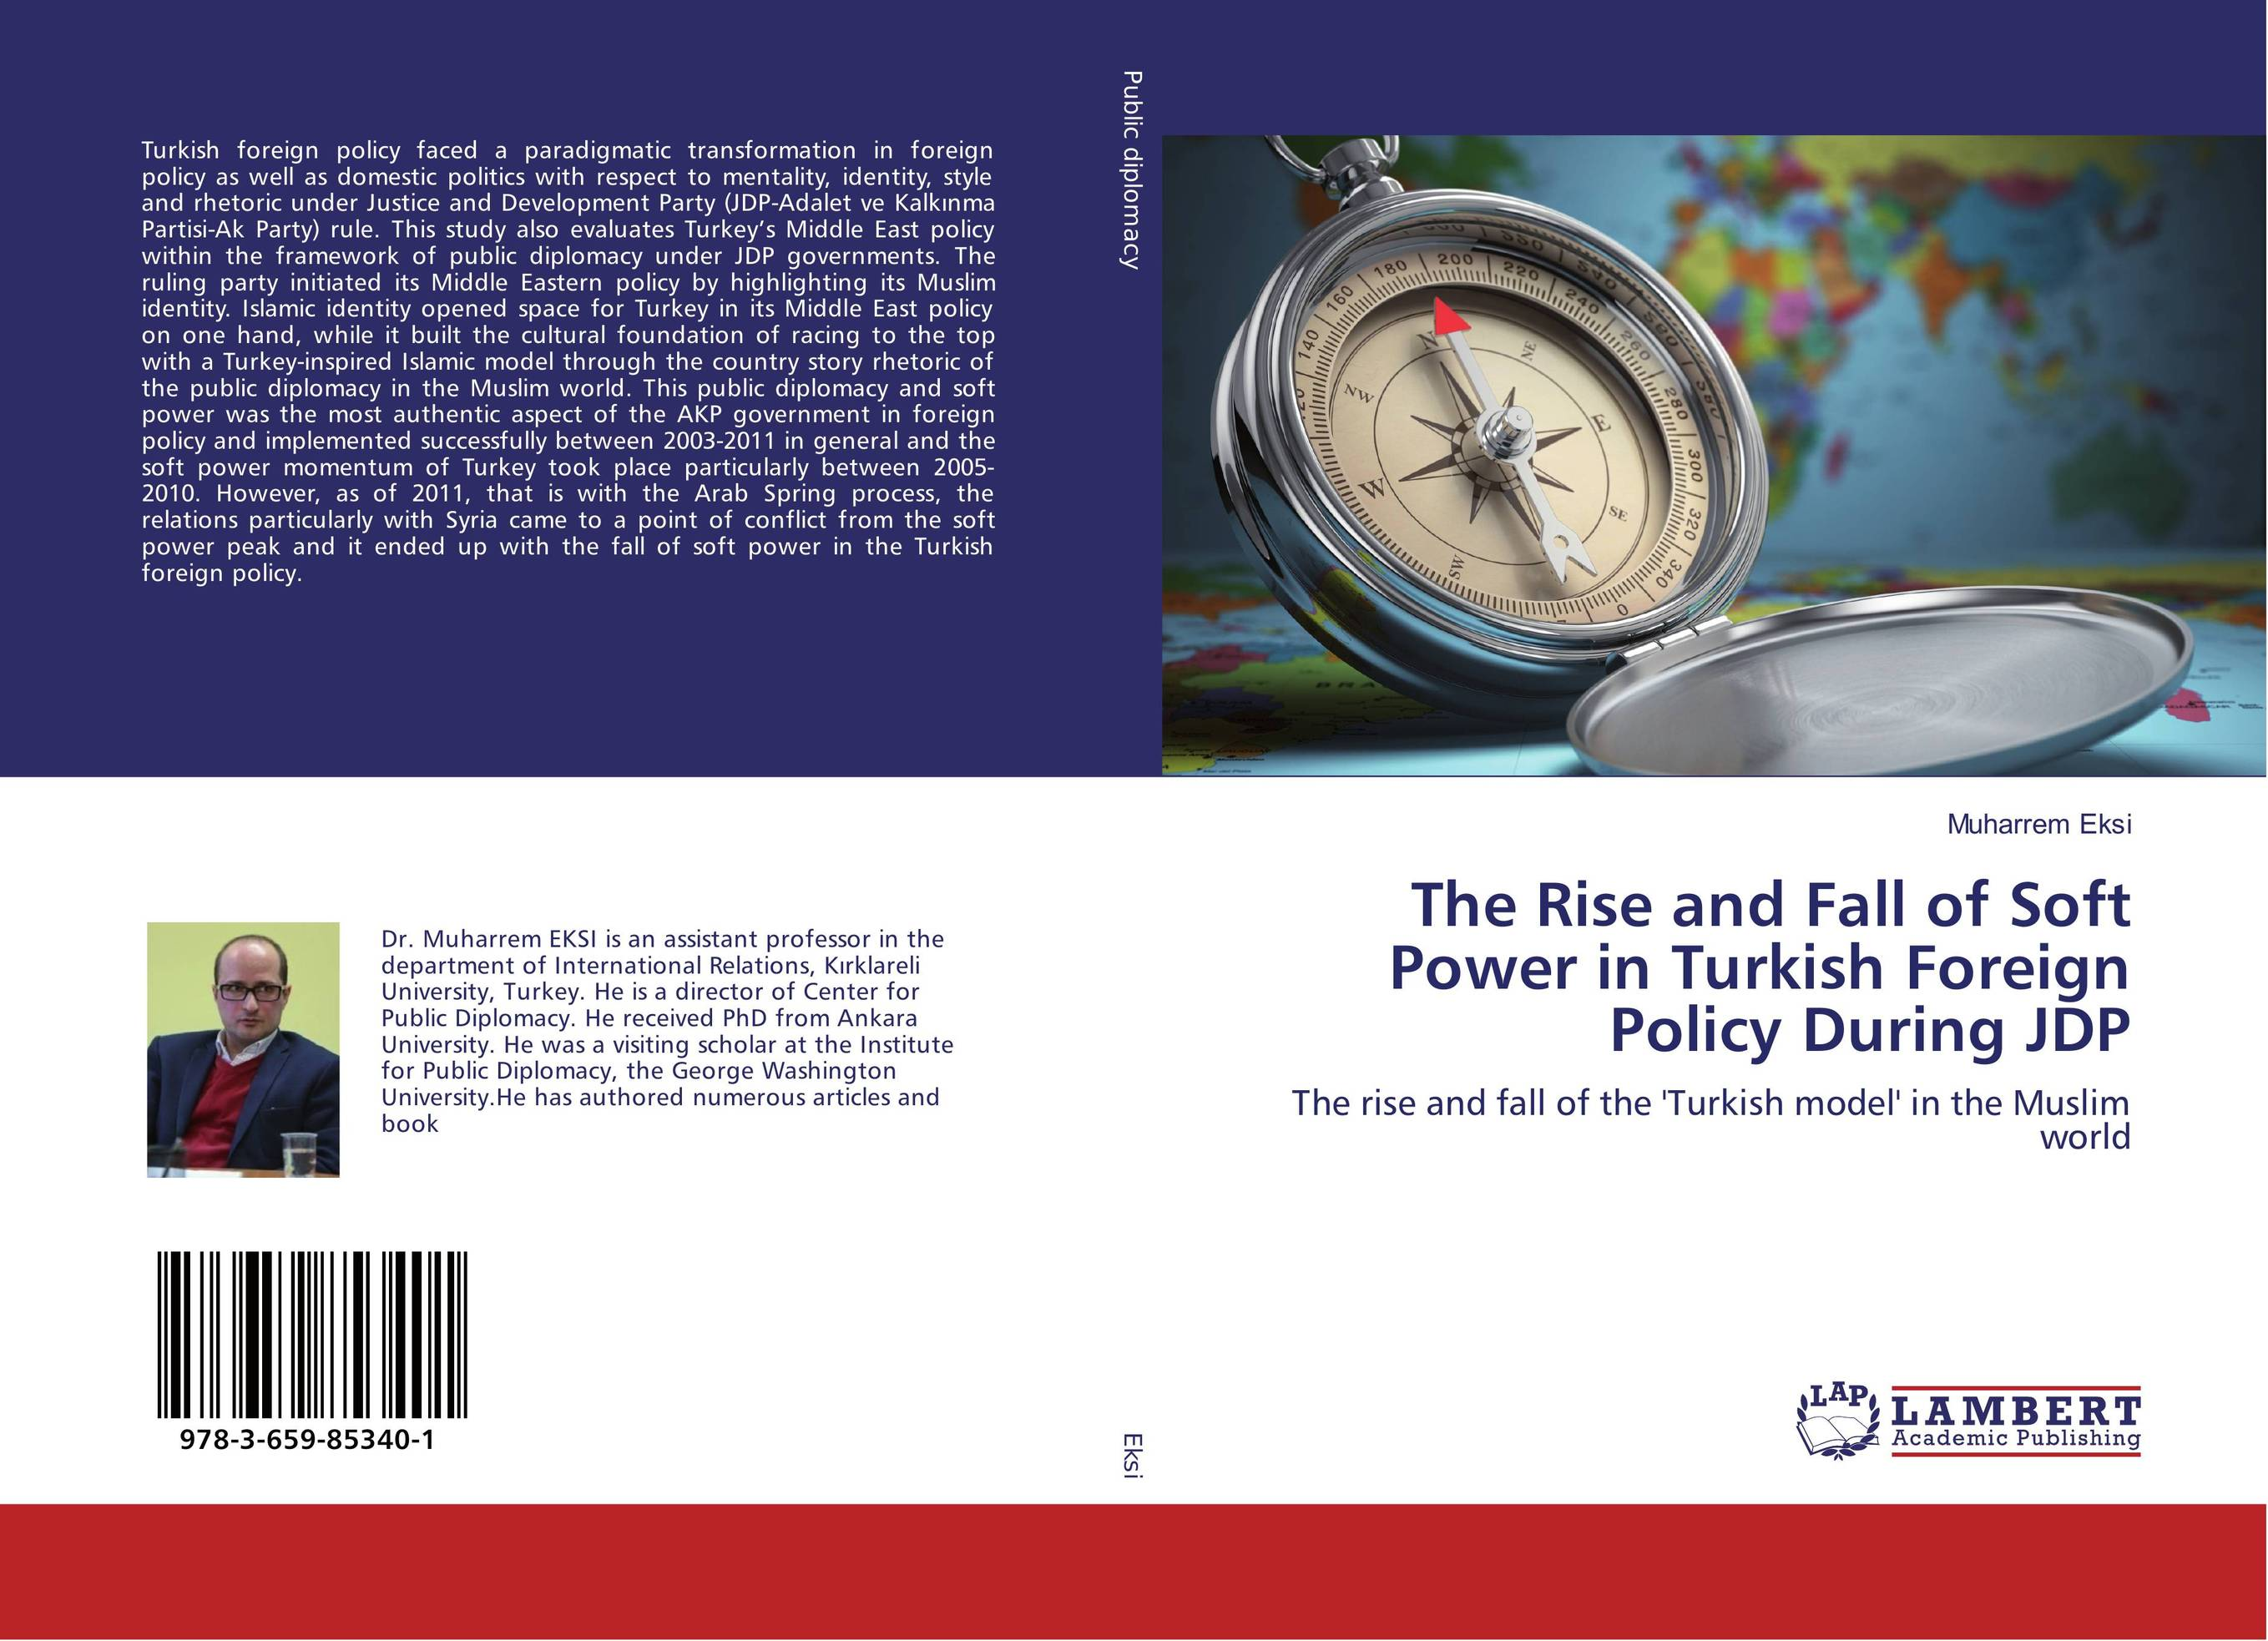 The Rise and Fall of Soft Power in Turkish Foreign Policy During JDP point systems migration policy and international students flow